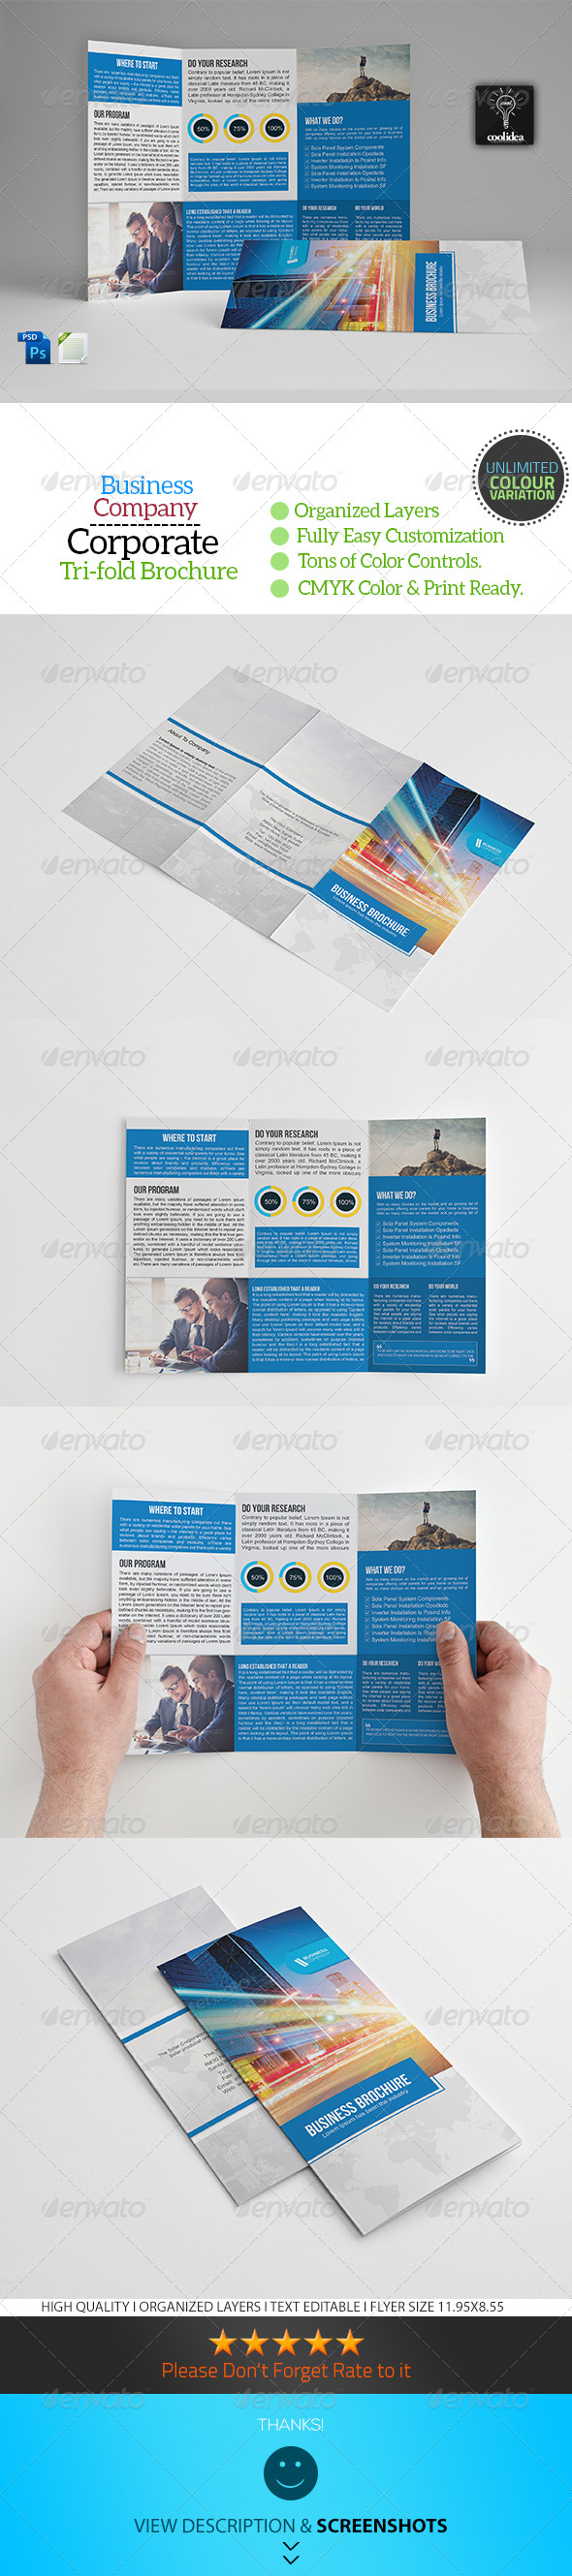 A4 Trifold Business Brochure Template Vol07 - Corporate Brochures